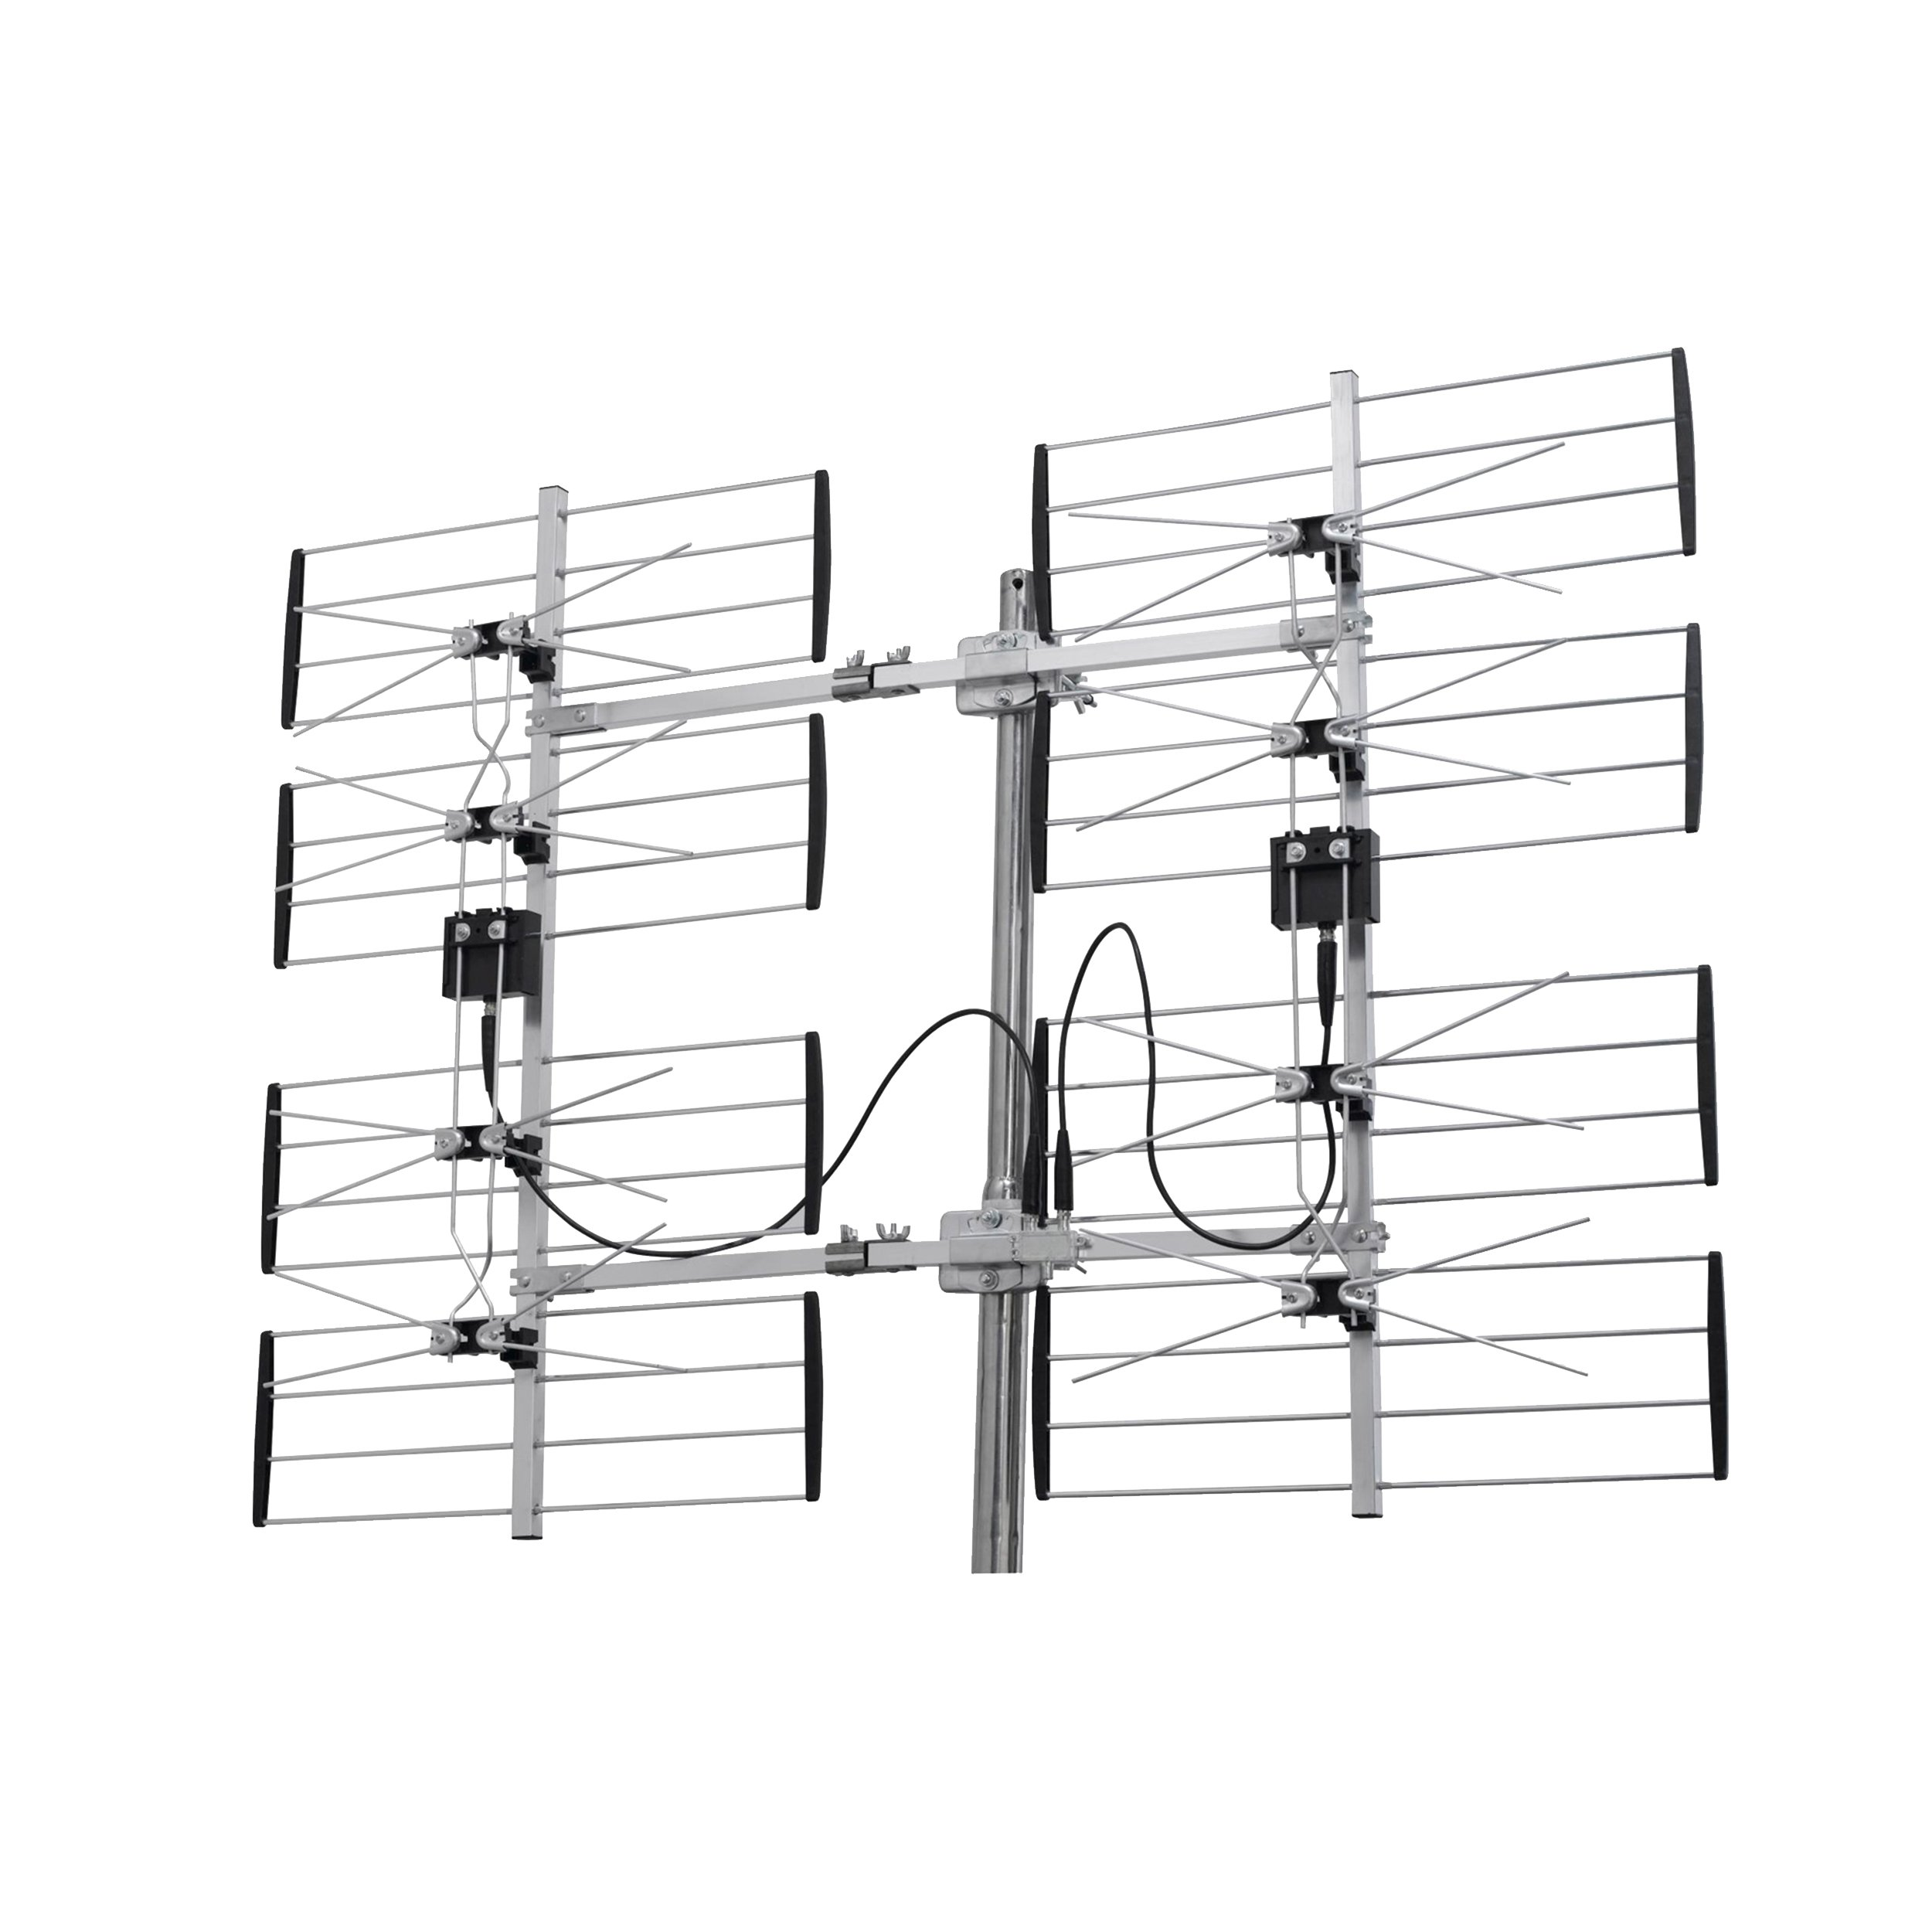 Homevision Technology ANT7285 Digiwave 8 Bay Ultra Clear Digital Outdoor TV Antenna, Silver